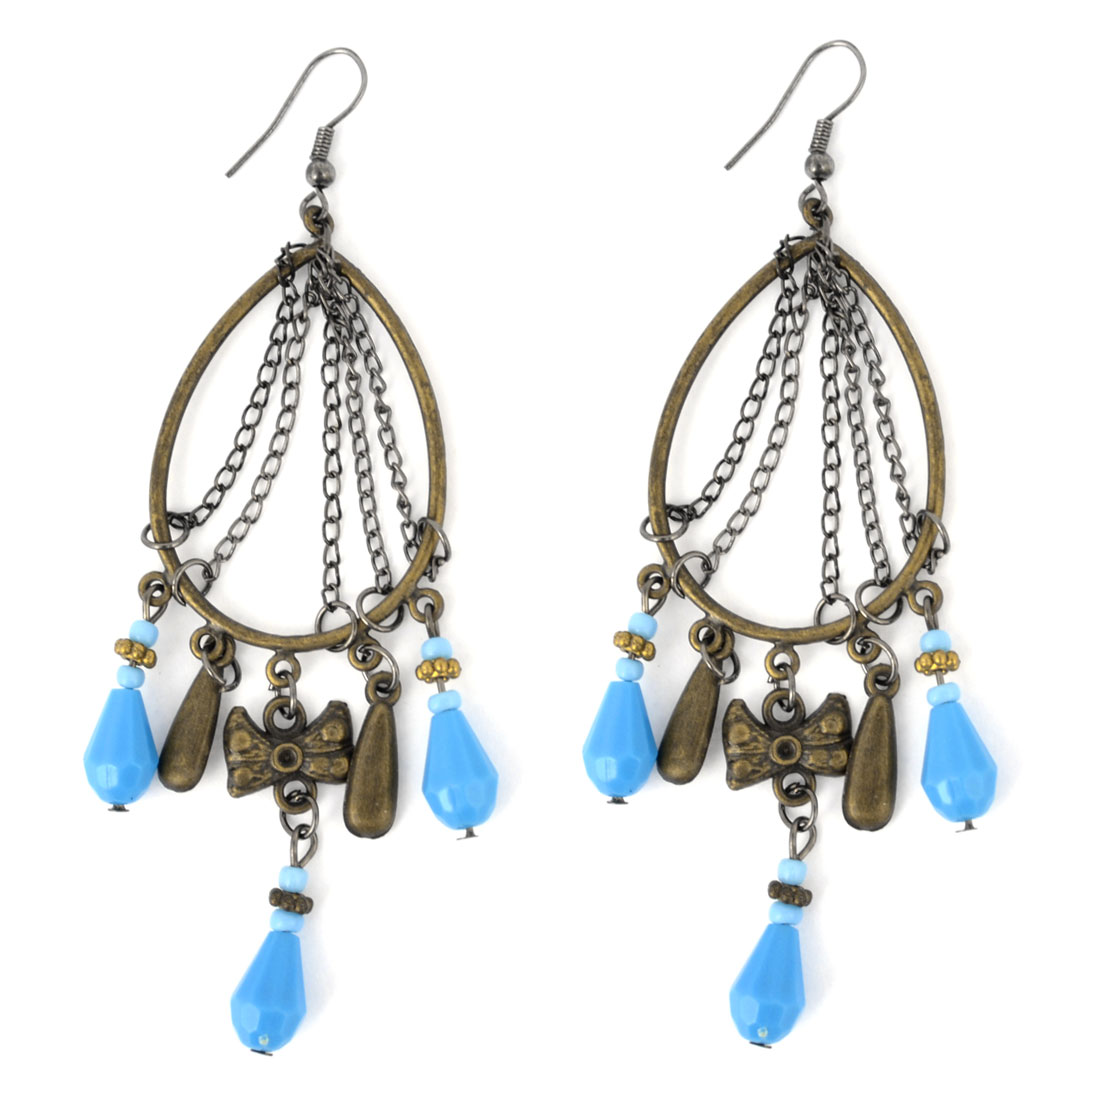 "Pair Blue Beads Pendant Retro Style Bronze Tone Metal Hook Earrings Eardrops 4.1"" Long"